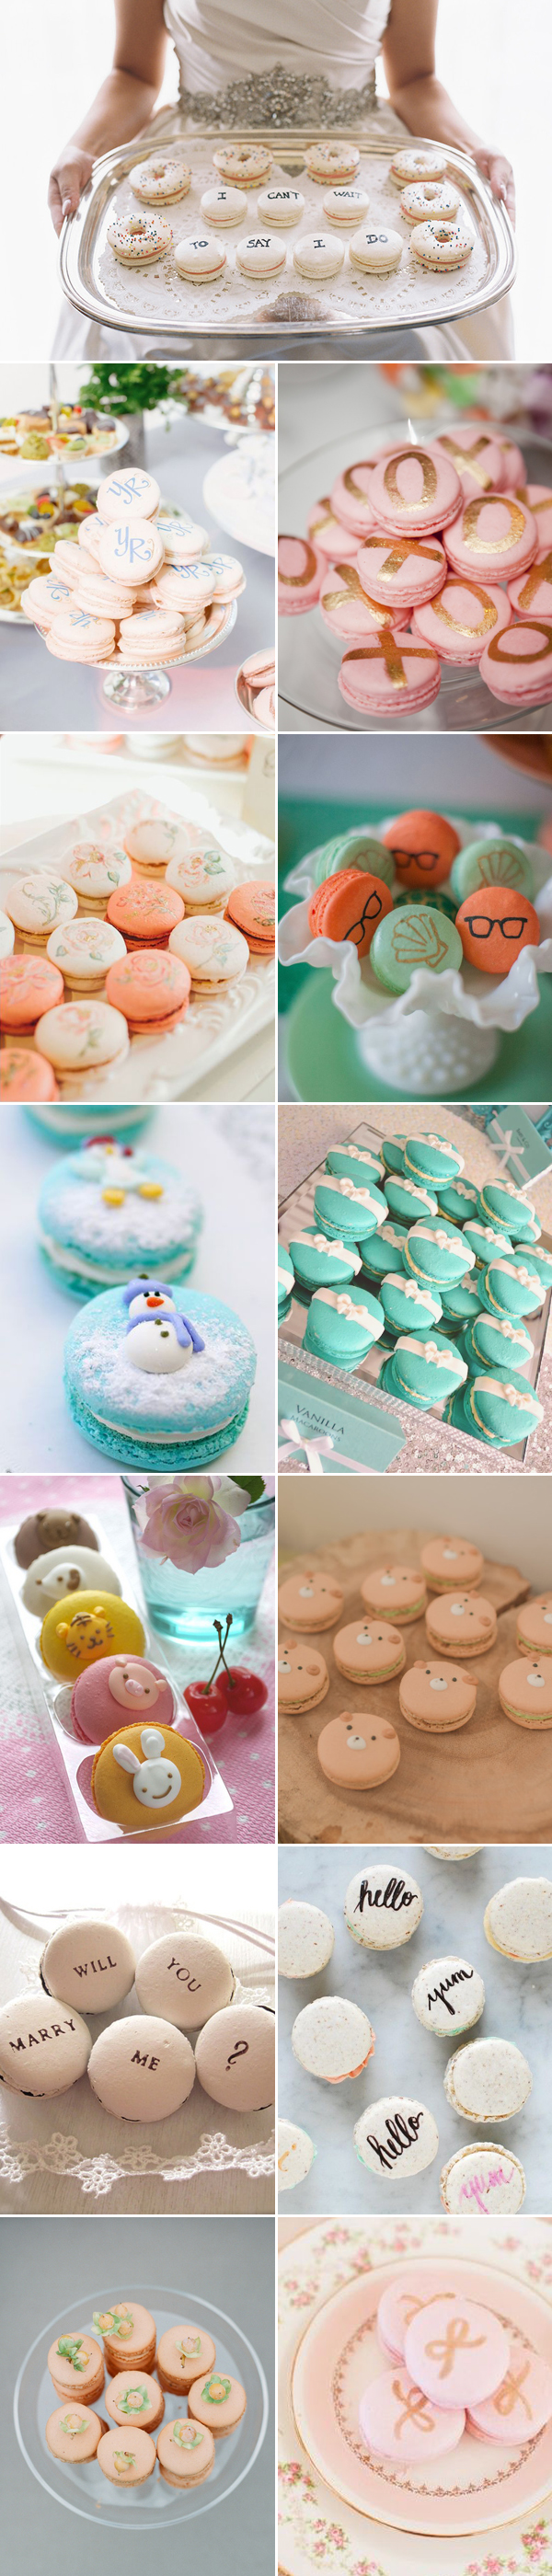 macaron01-personalized